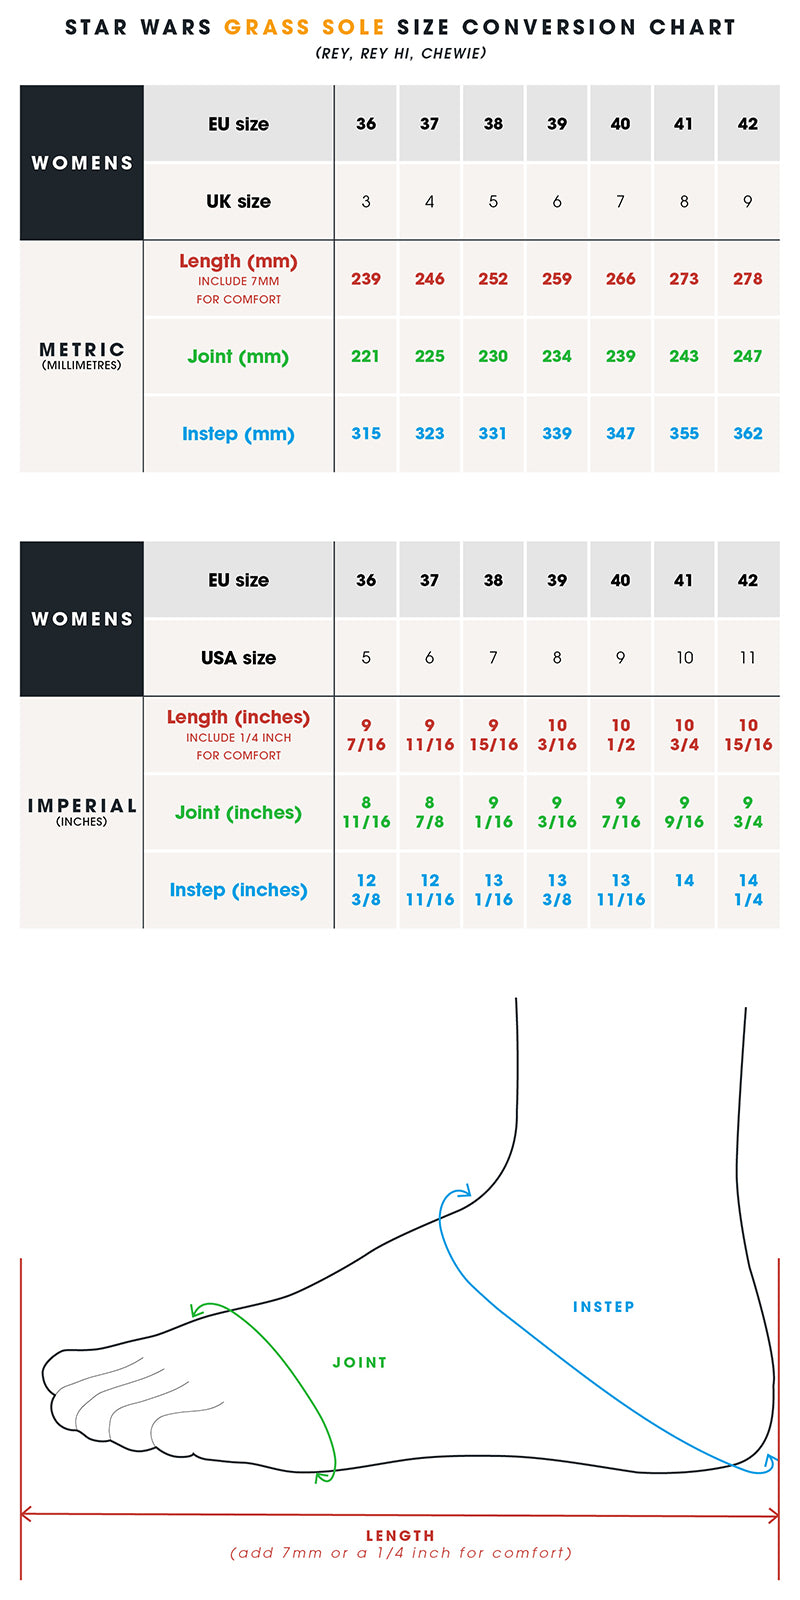 Sizing chart for star wars grass sole